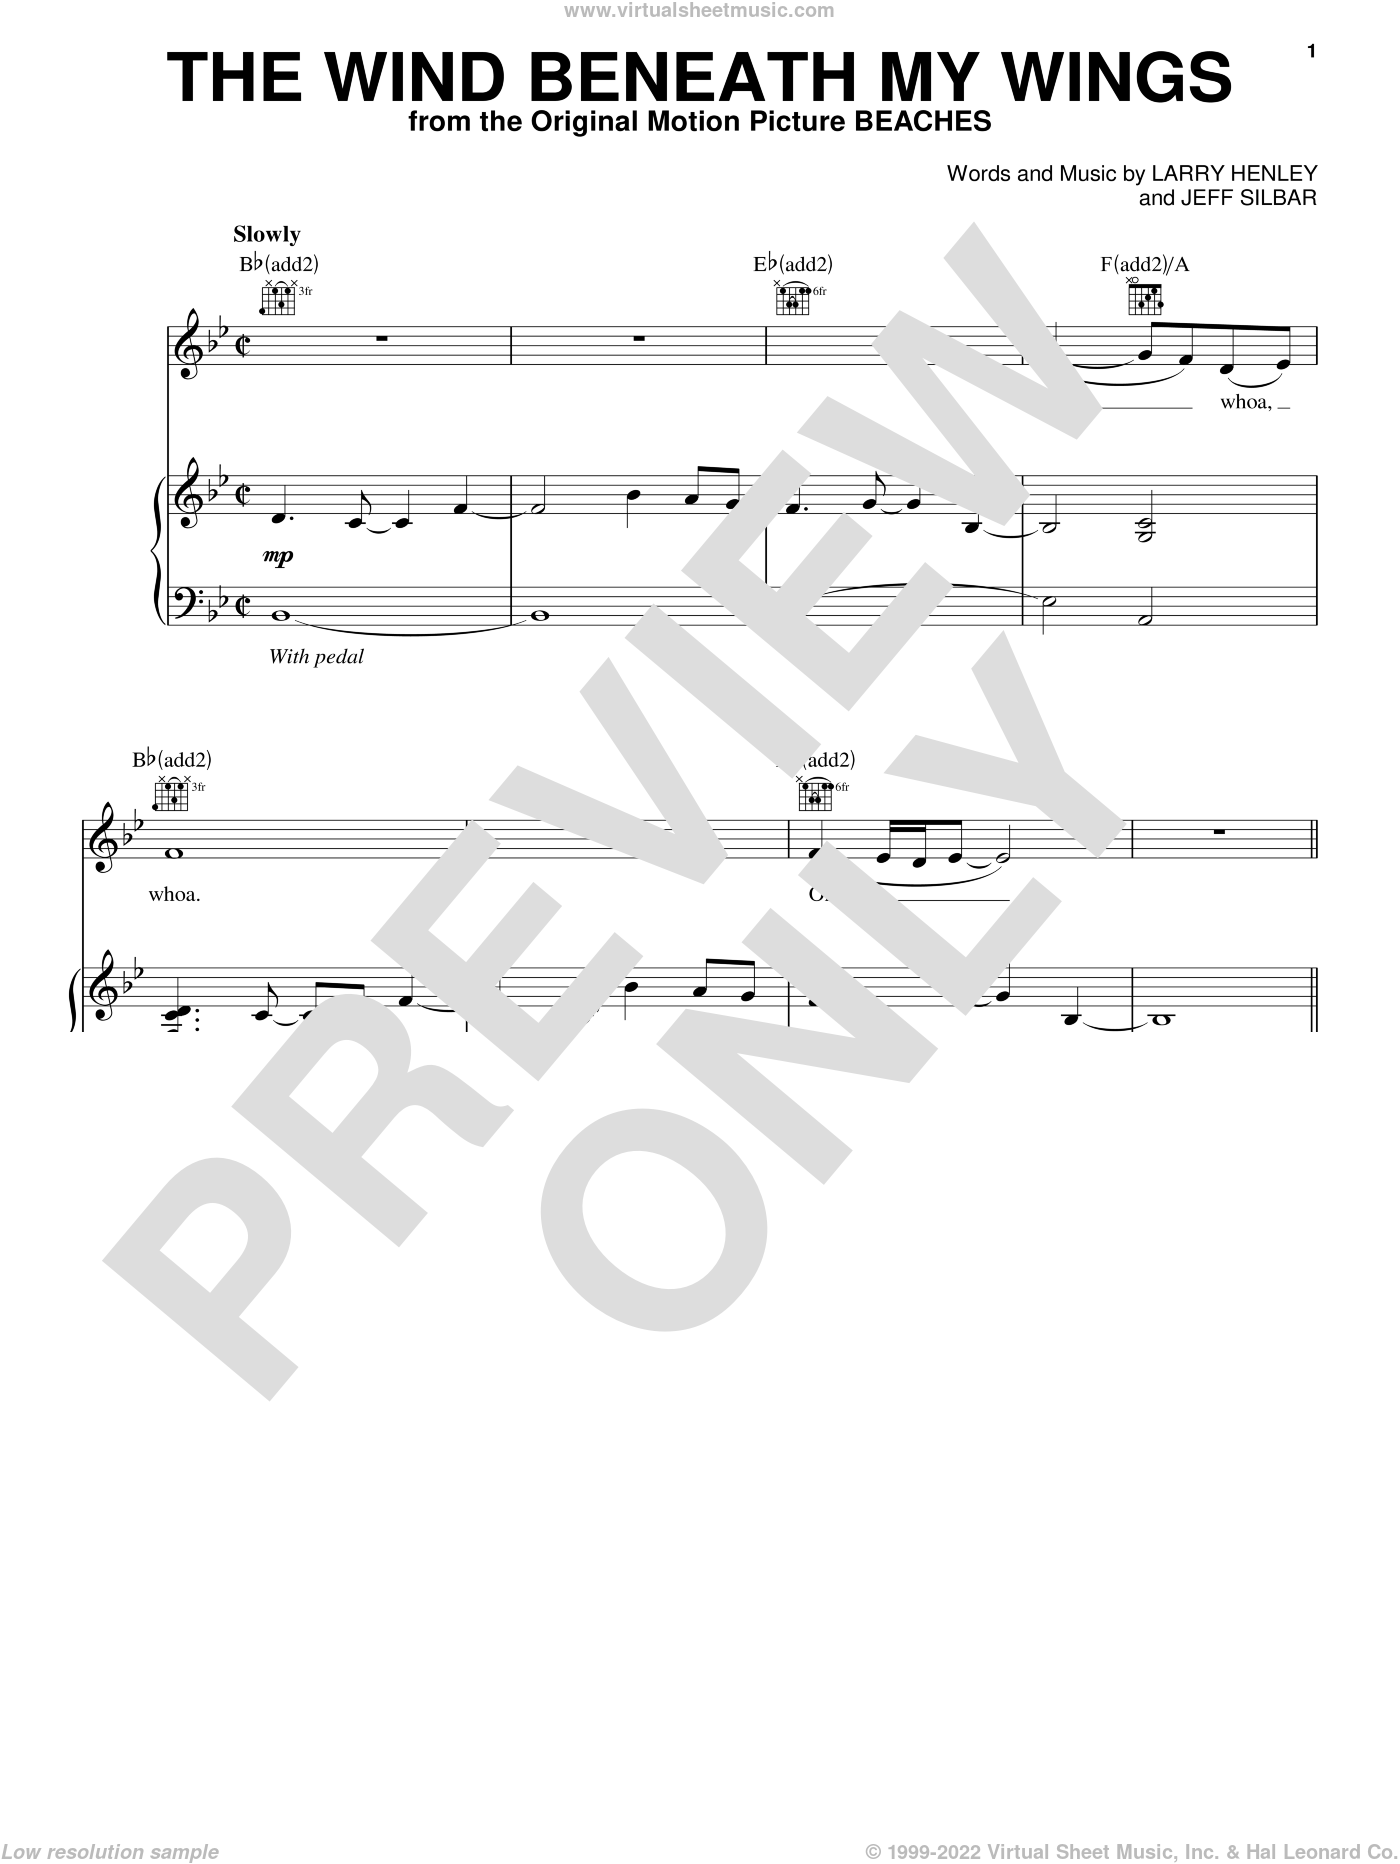 The Wind Beneath My Wings sheet music for voice and piano by Bette Midler, Jeff Silbar and Larry Henley, intermediate skill level